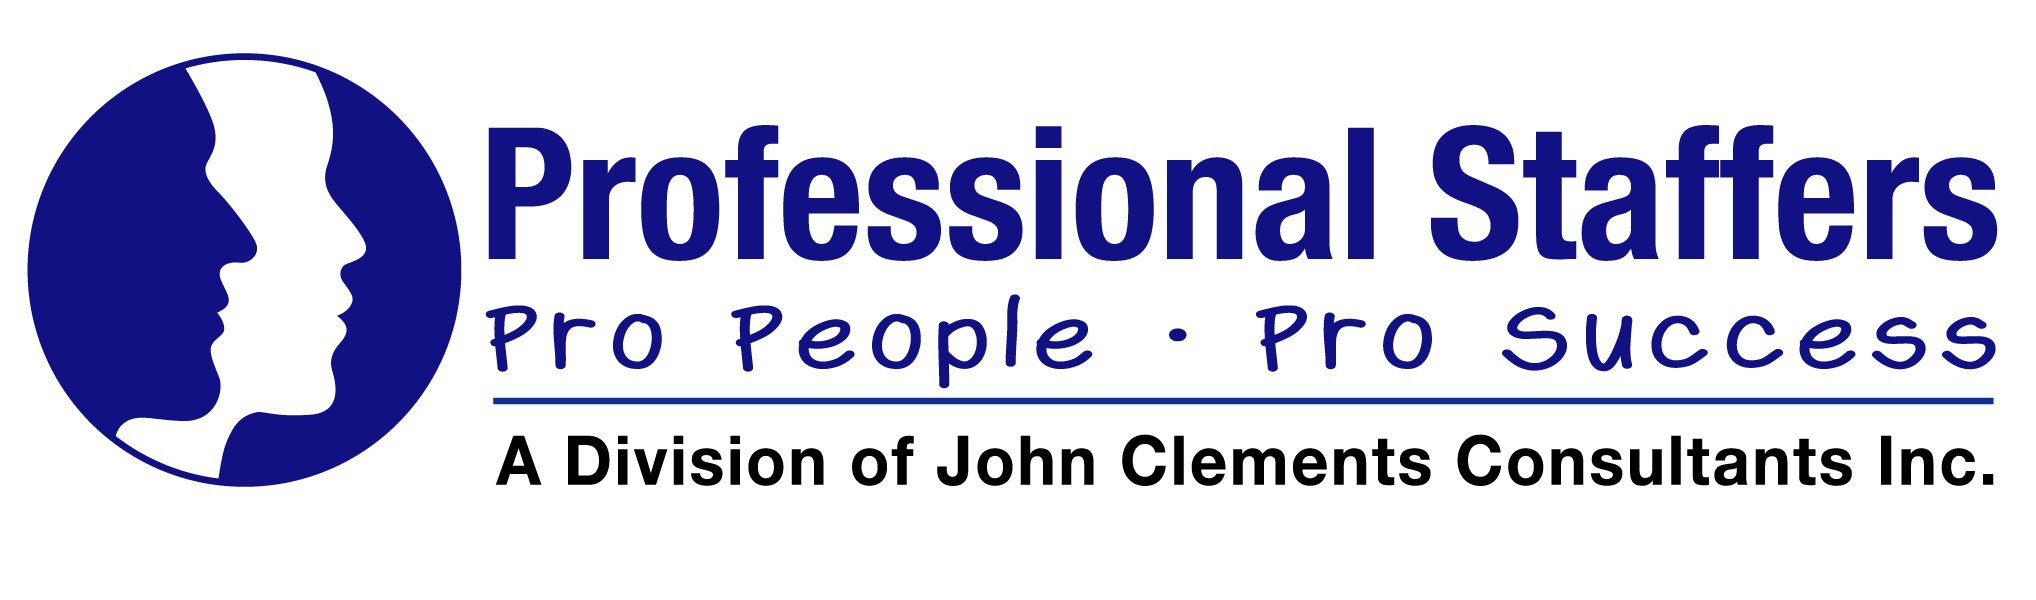 John Clements Consultants Inc. (Professional Staffers Division)